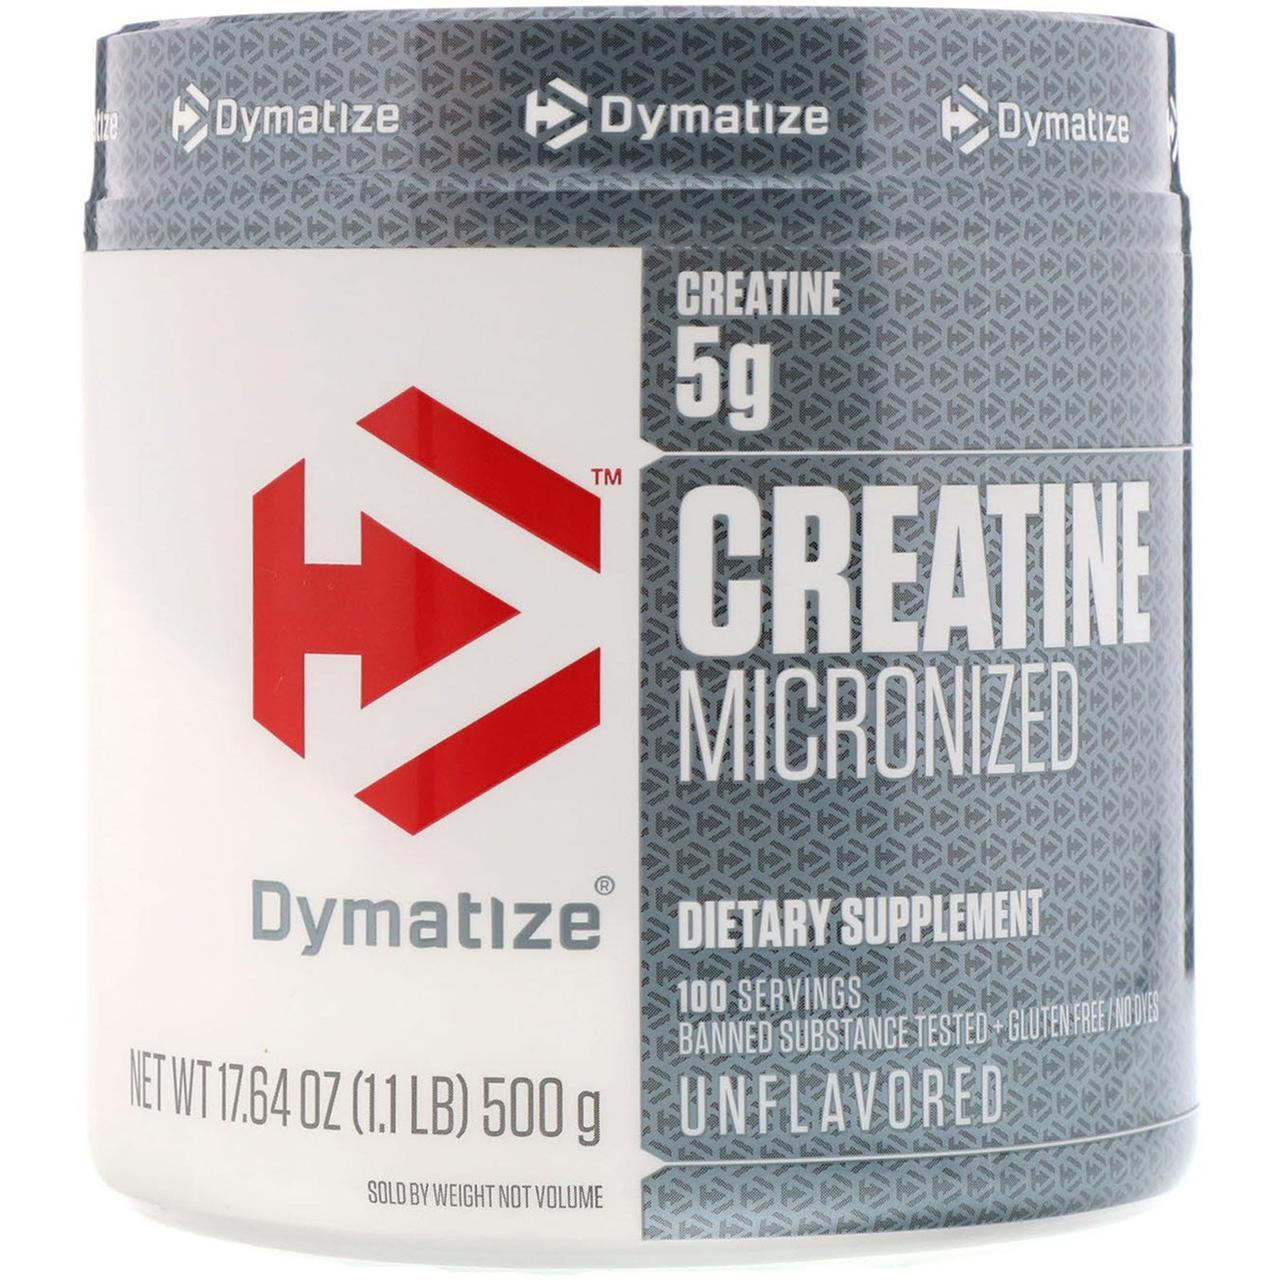 Creatine Micronized (500 g, unflavored) Dymatize